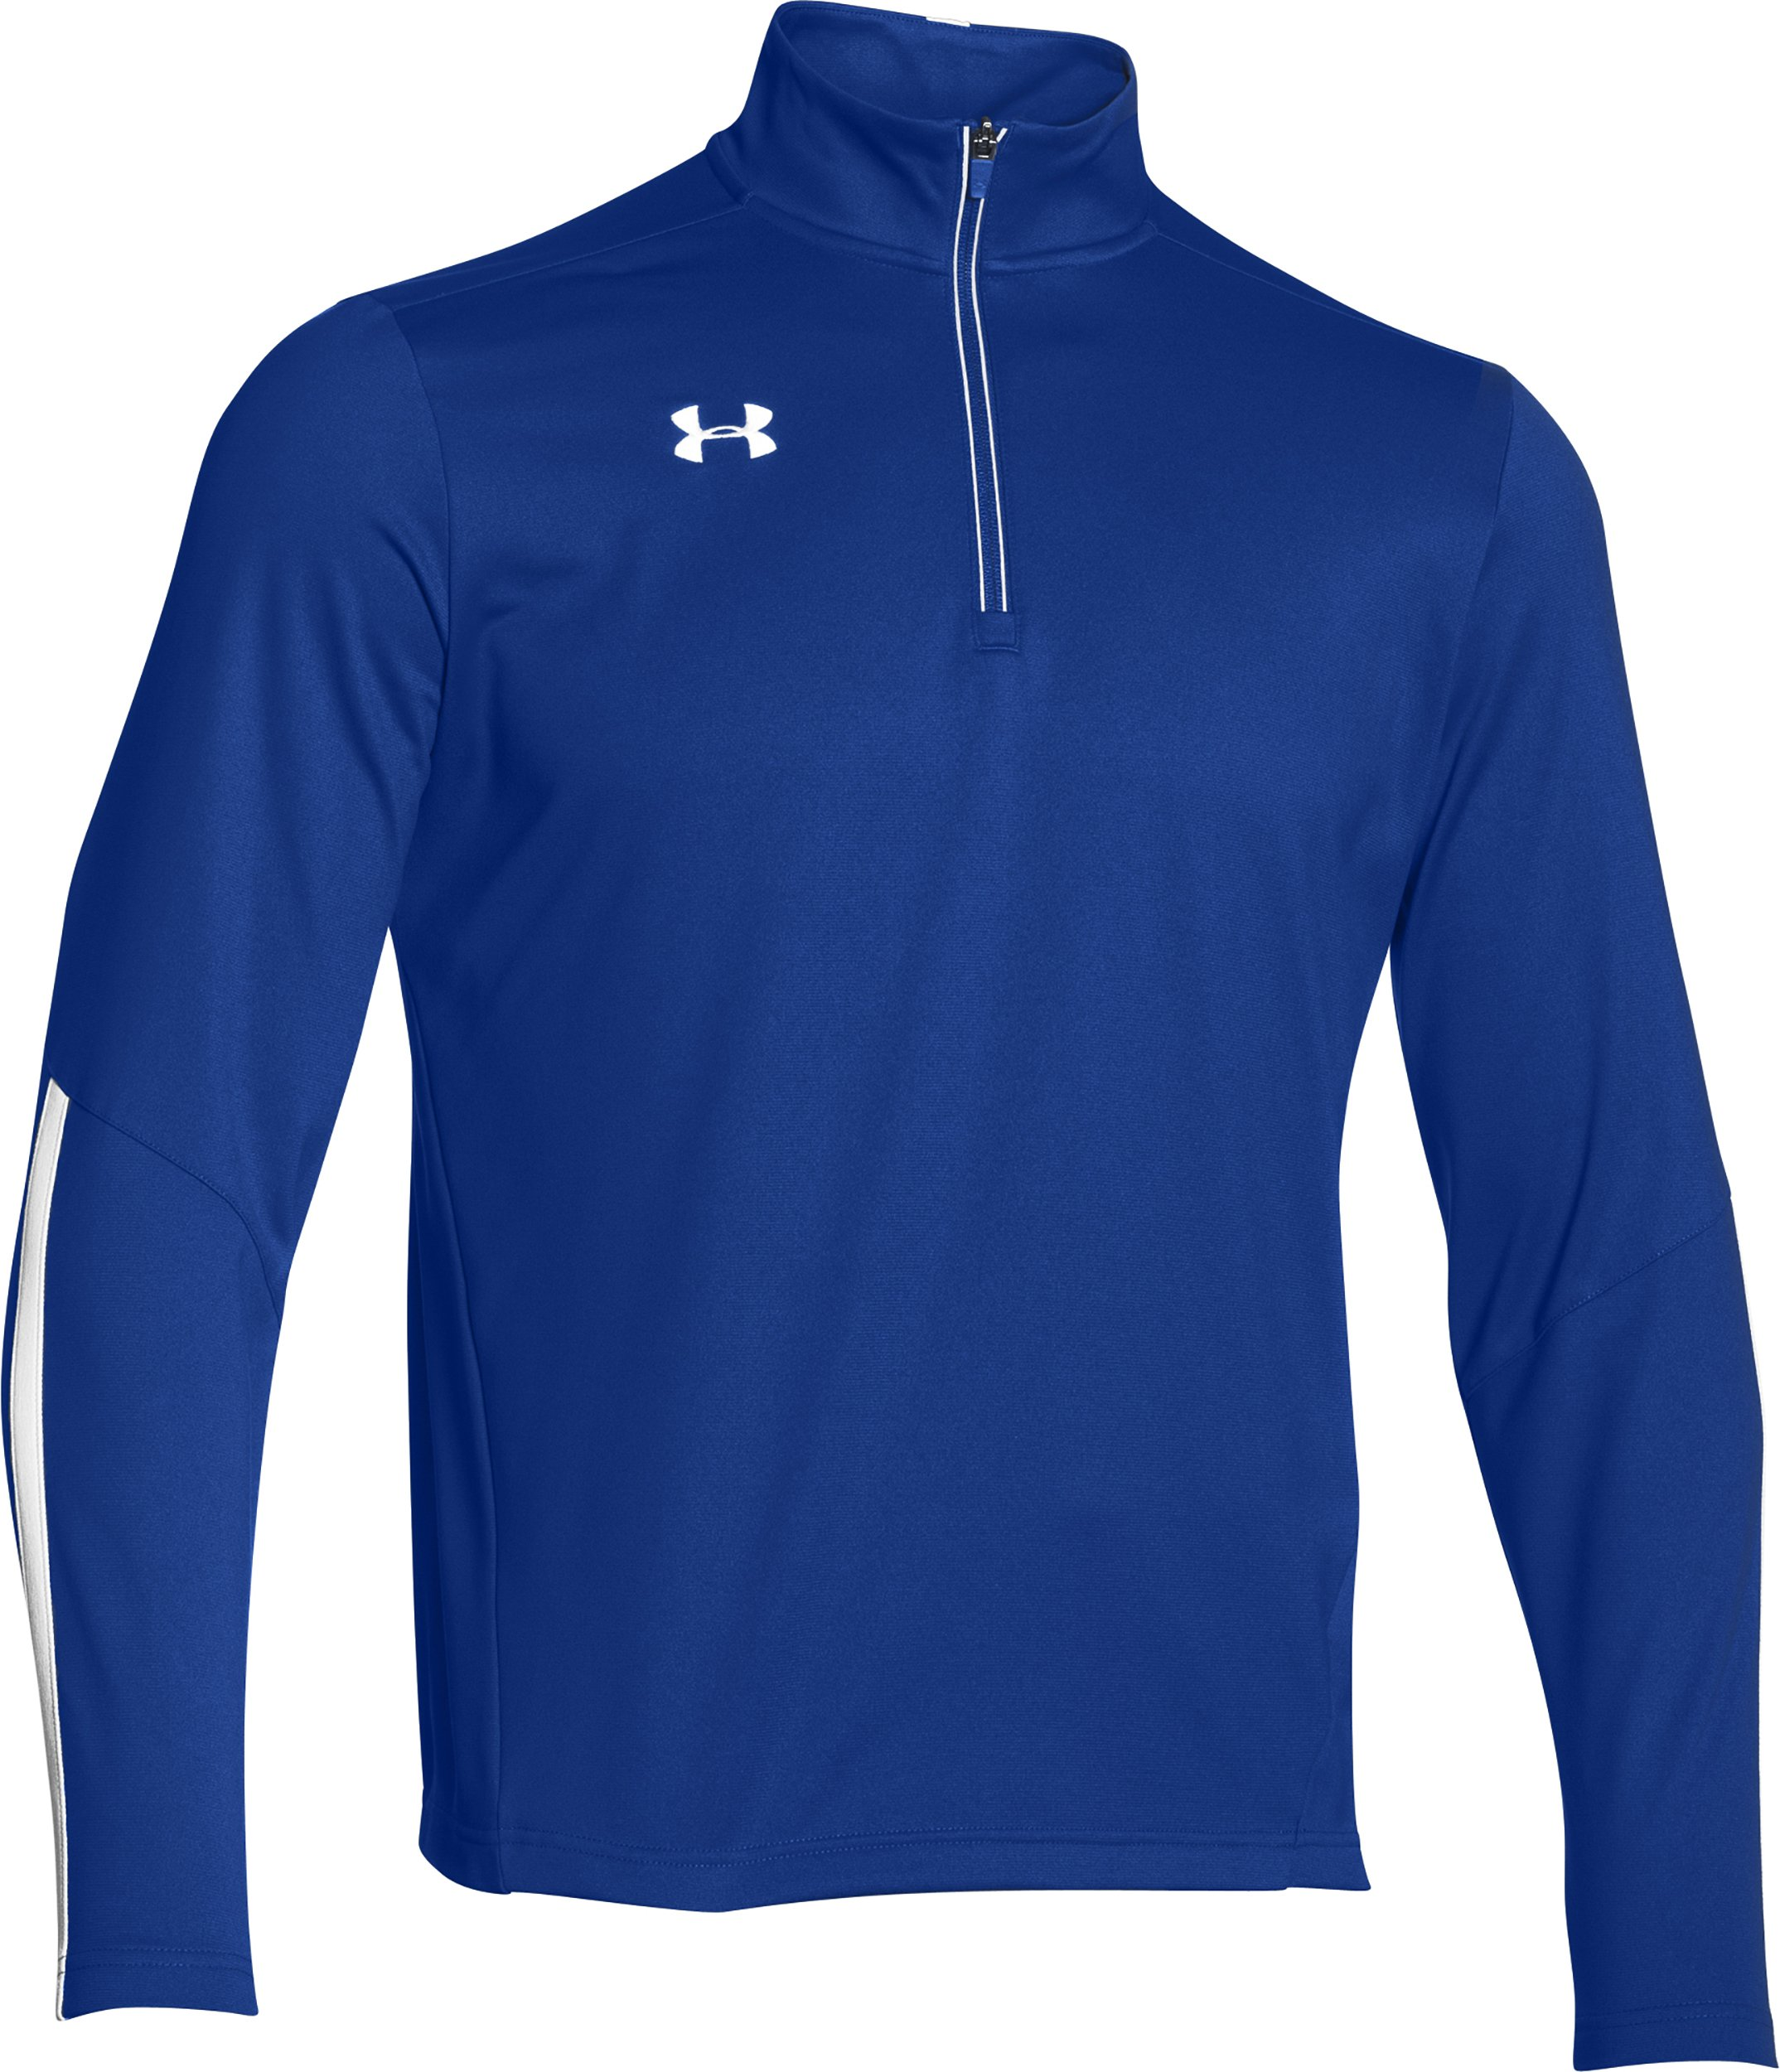 Under Armour Men's Qualifier 1/4 Zip Pullover (Small, Royal/White) by Under Armour